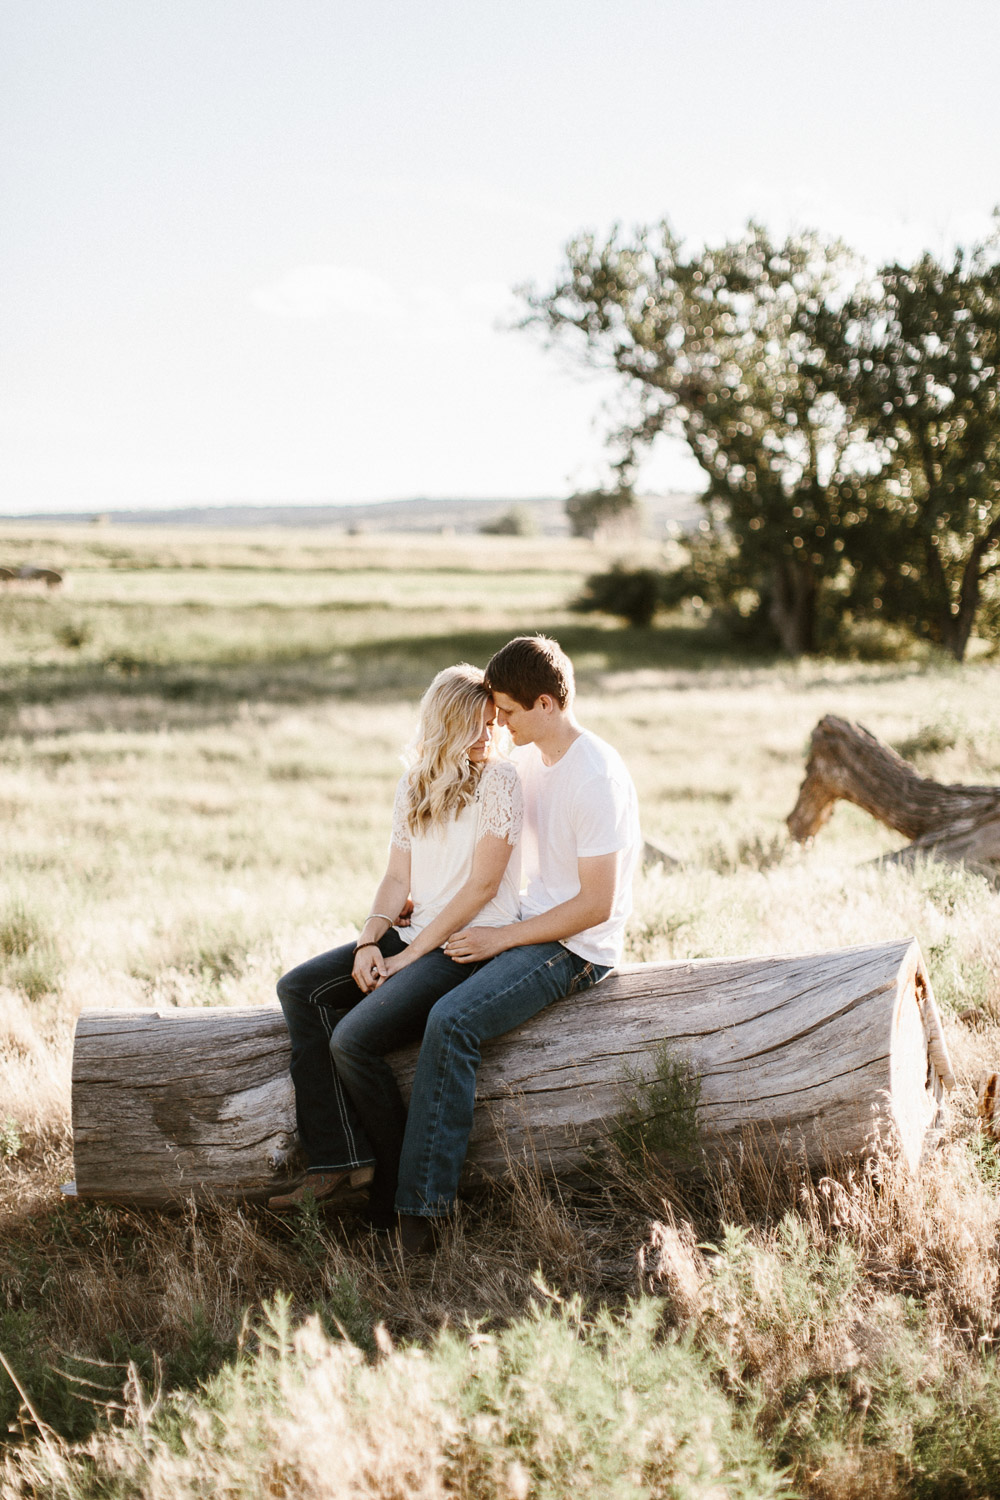 SiouxFalls_BlackHills_Adventure_Engagement_Wedding_Photographer_01.jpg